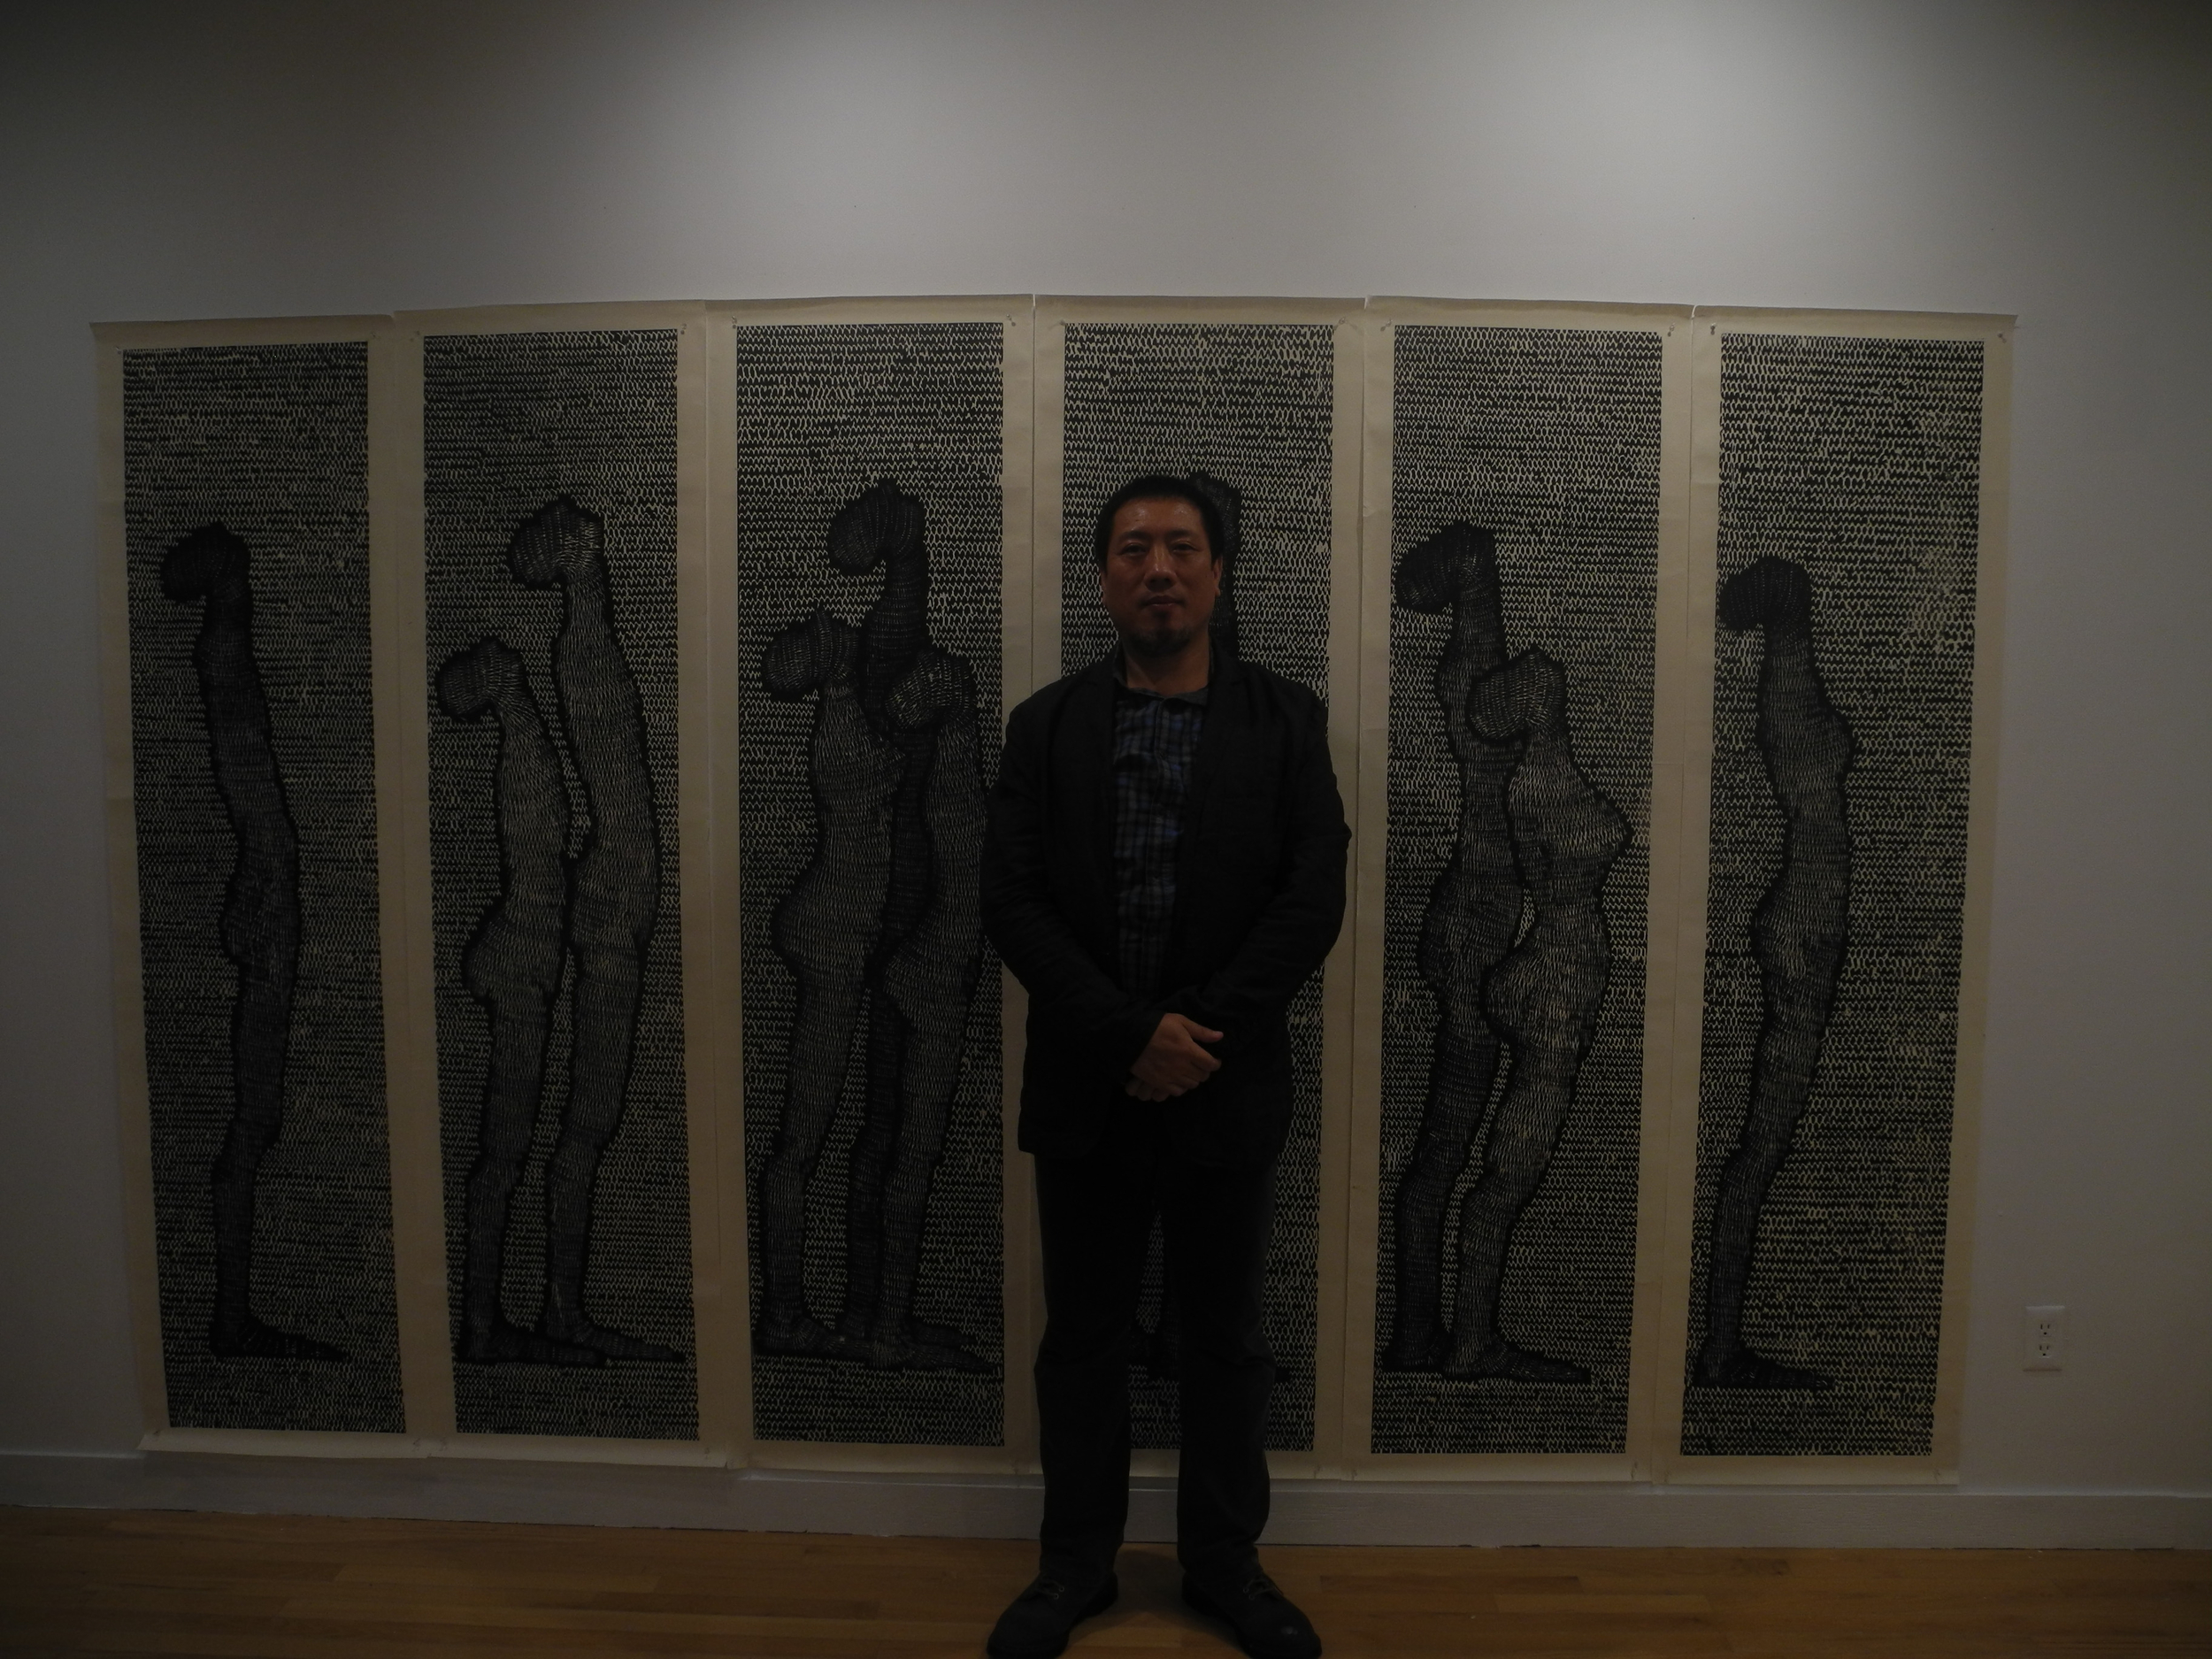 Hudson Valley Center for Creative Arts presented the works of Luo Xiangke at Art Centro, 10/23/14.